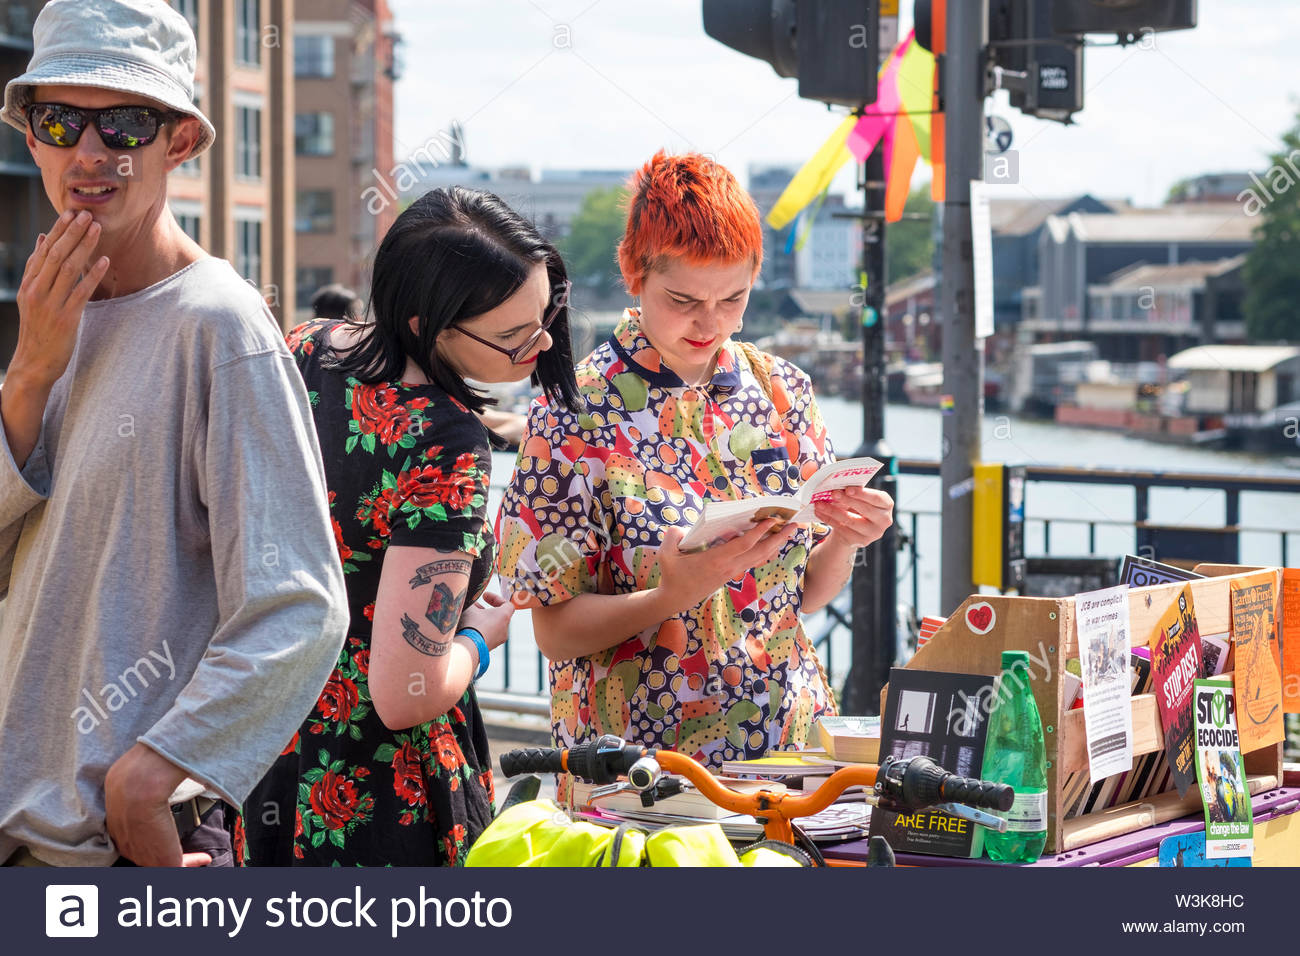 Bristol, United Kingdom - 16 July 2019: Extinction Rebellion supporters browse the improvised book store on Bristol Bridge as protesters take over Bristol city centre for a second day as part of their Summer Uprising campaign drawing attention to environmental issues. Credit: Andy Parker/Alamy Live News - Stock Image